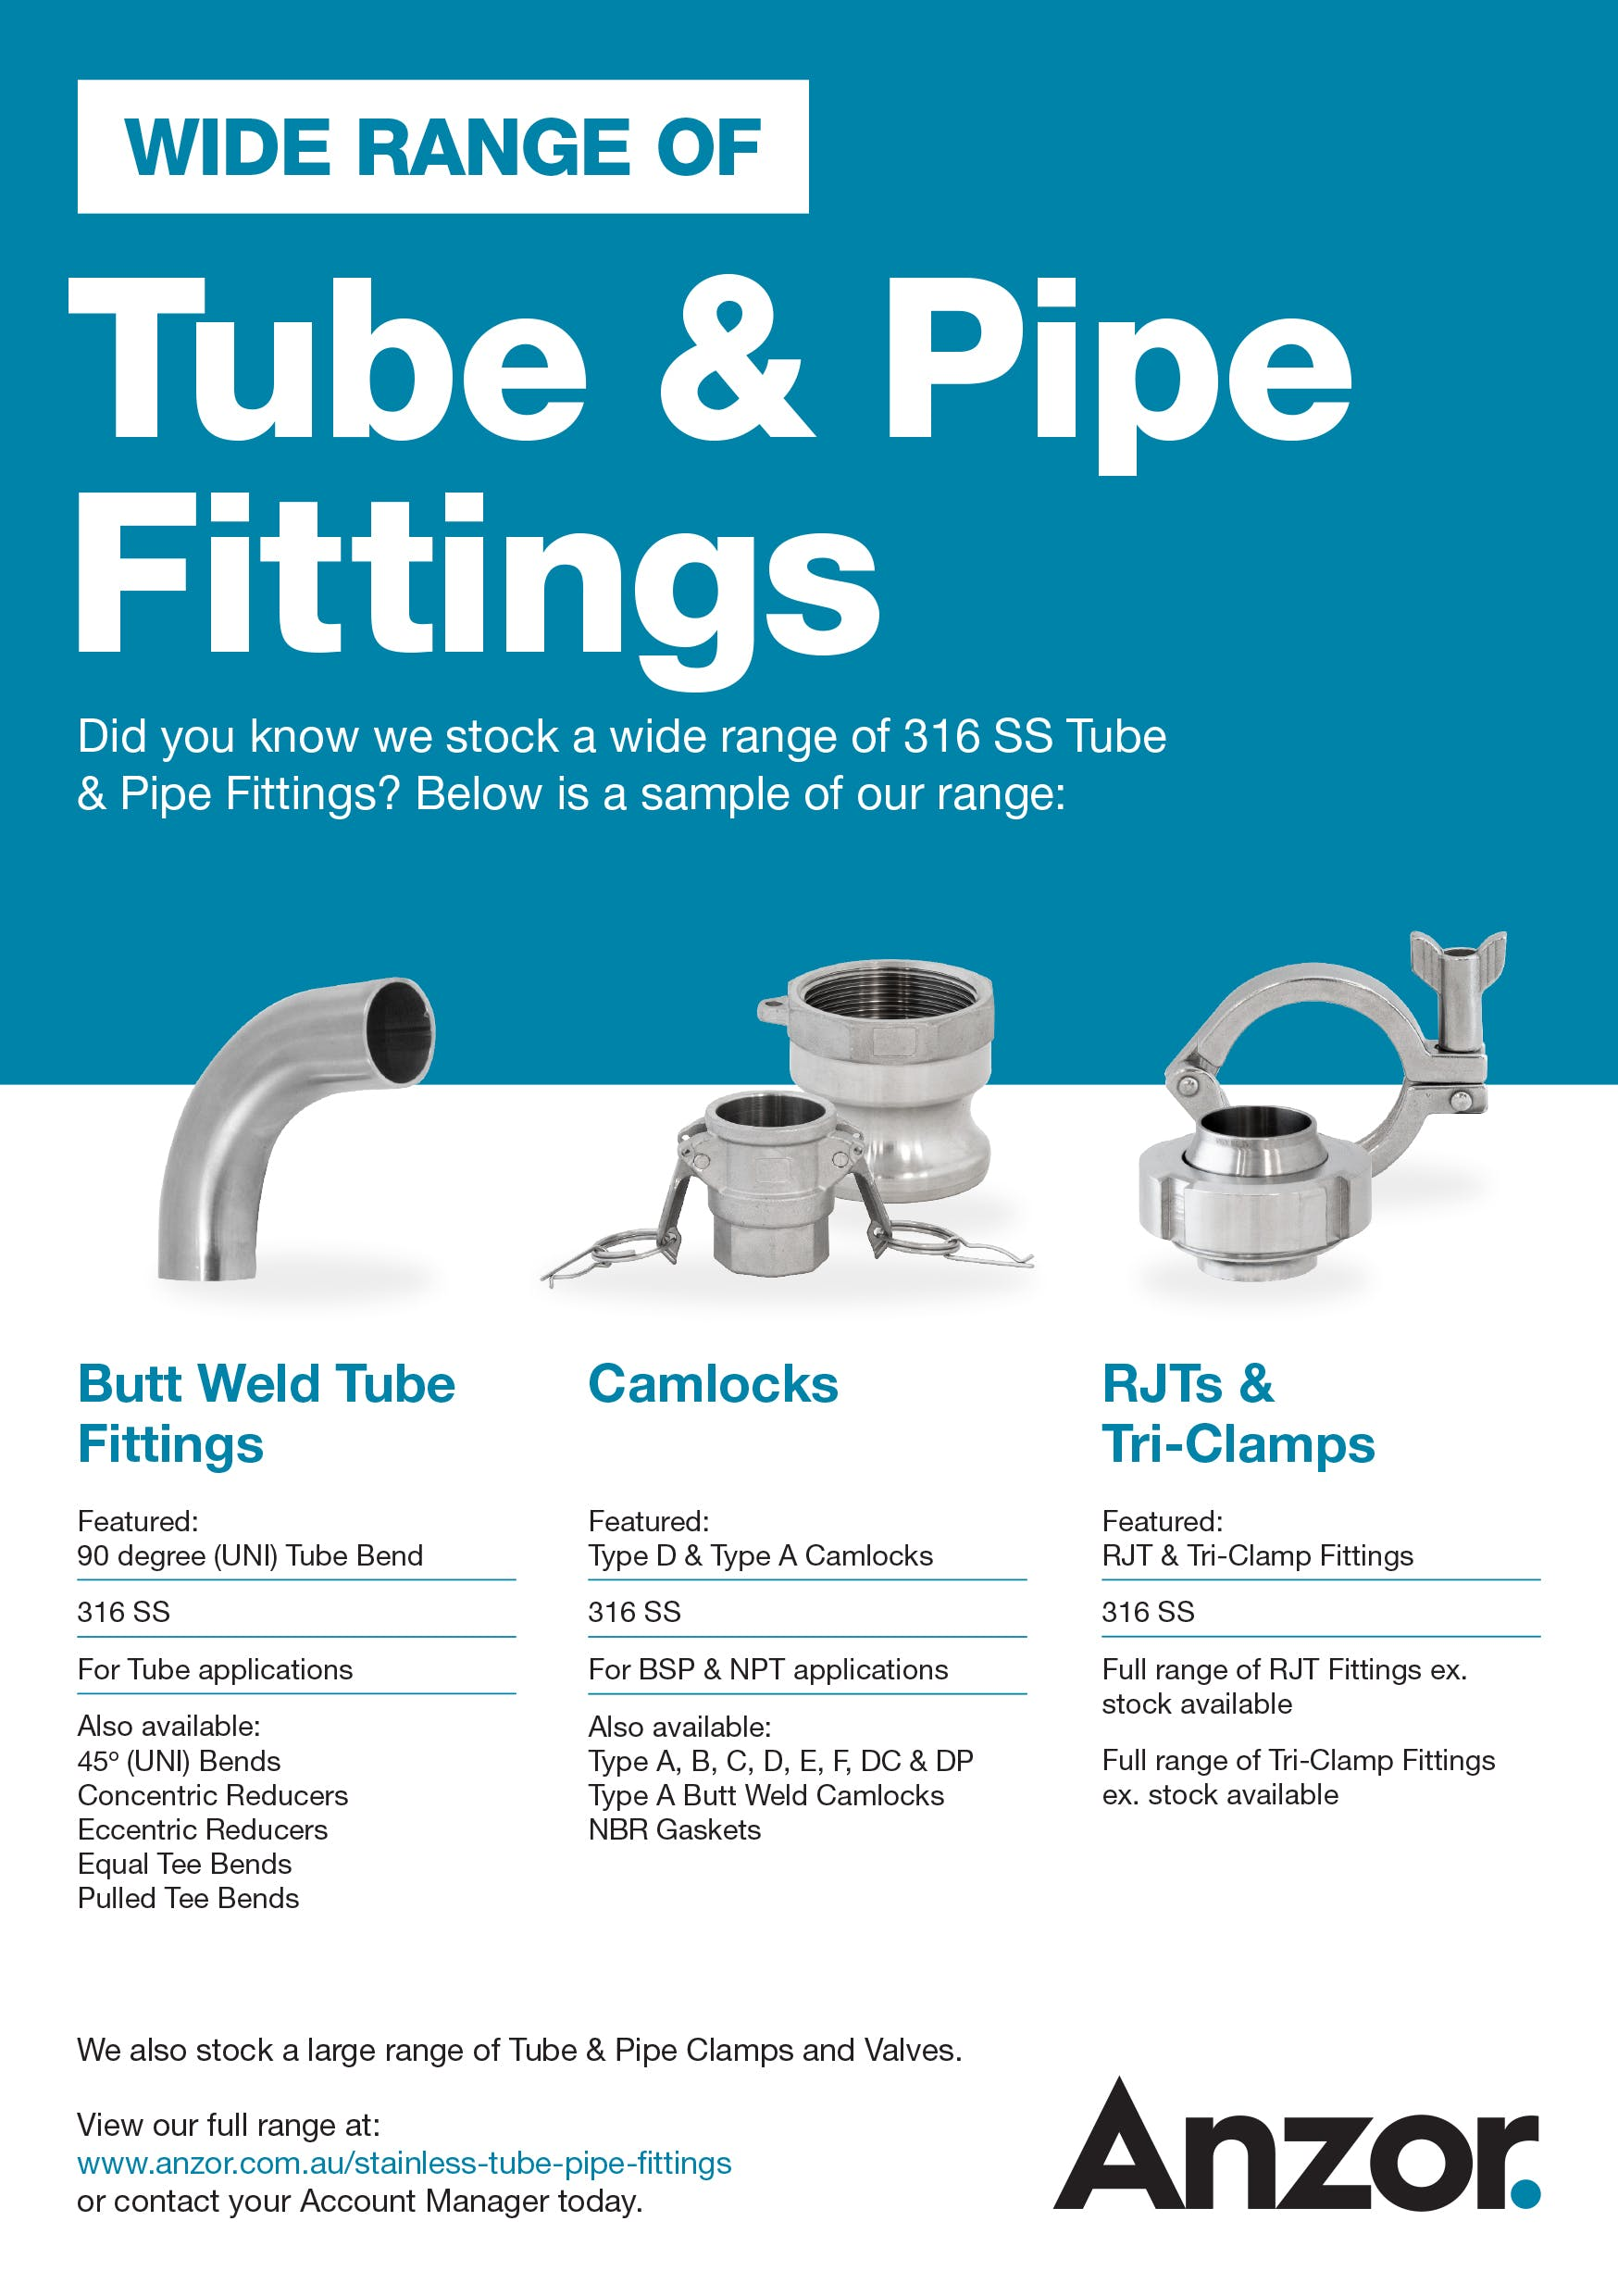 Stainless Steel Tube and Pipe Fittings Flyer